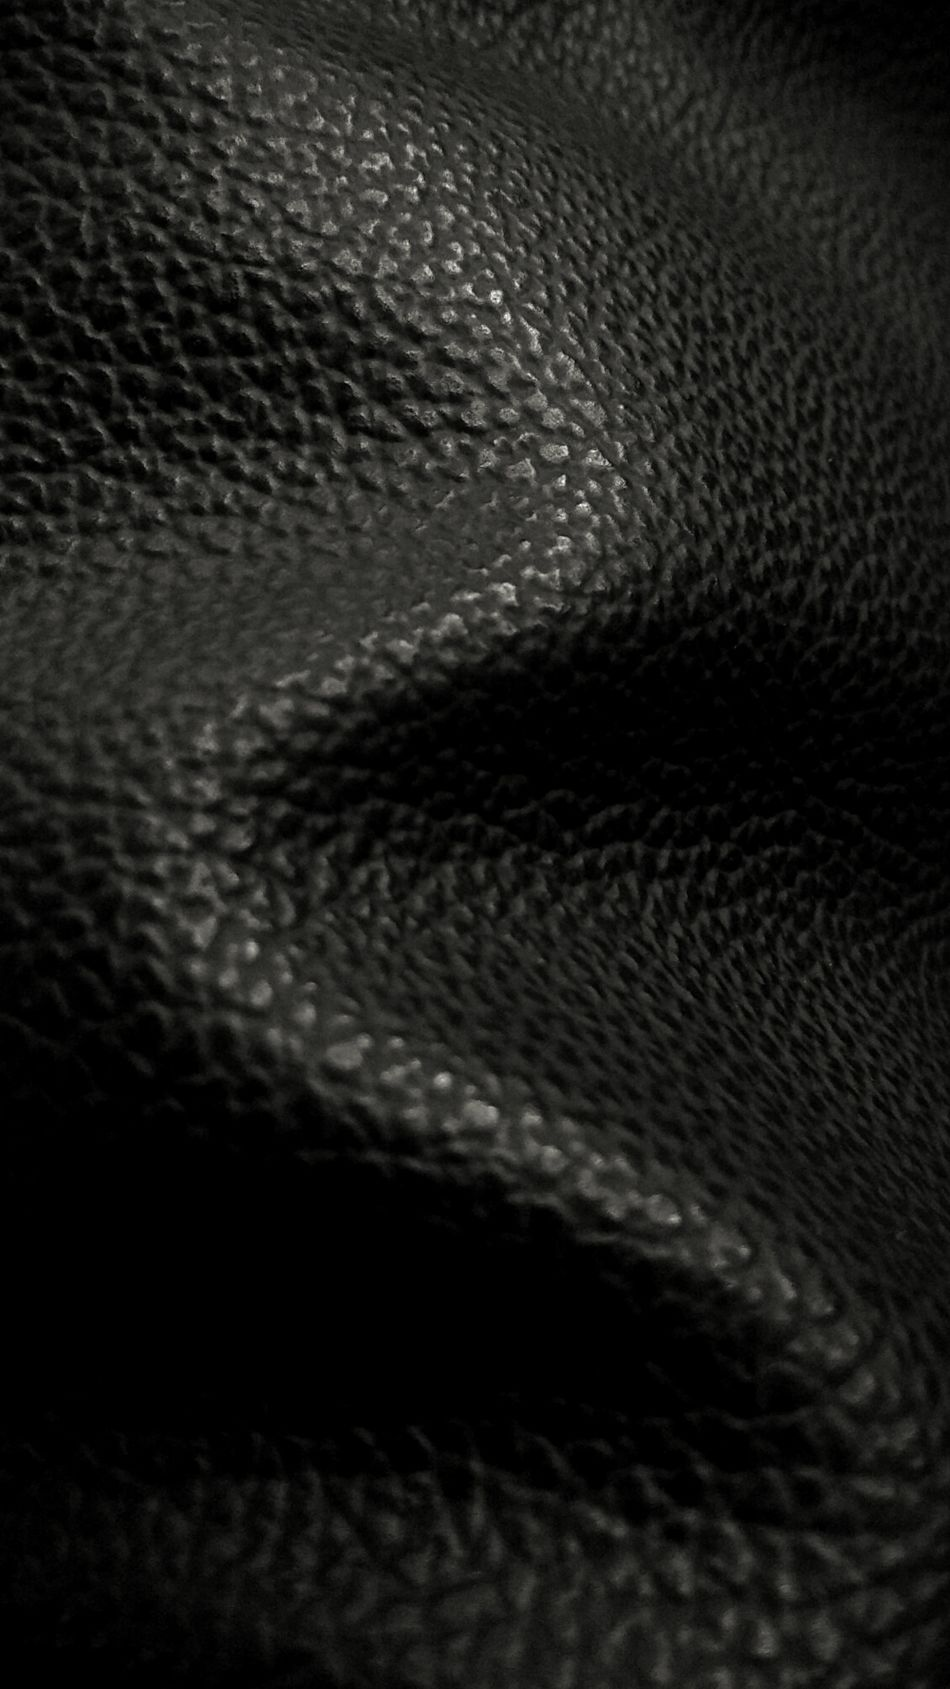 Leather texture Full Frame Animal Themes Animal Skin Blackandwhite Photography Black Background EyeEm Best Shots Black & White Blackandwhite EyeEm Gallery Simplicity Textured  Pattern Material Textured  Leather Close-up Welcome To Black